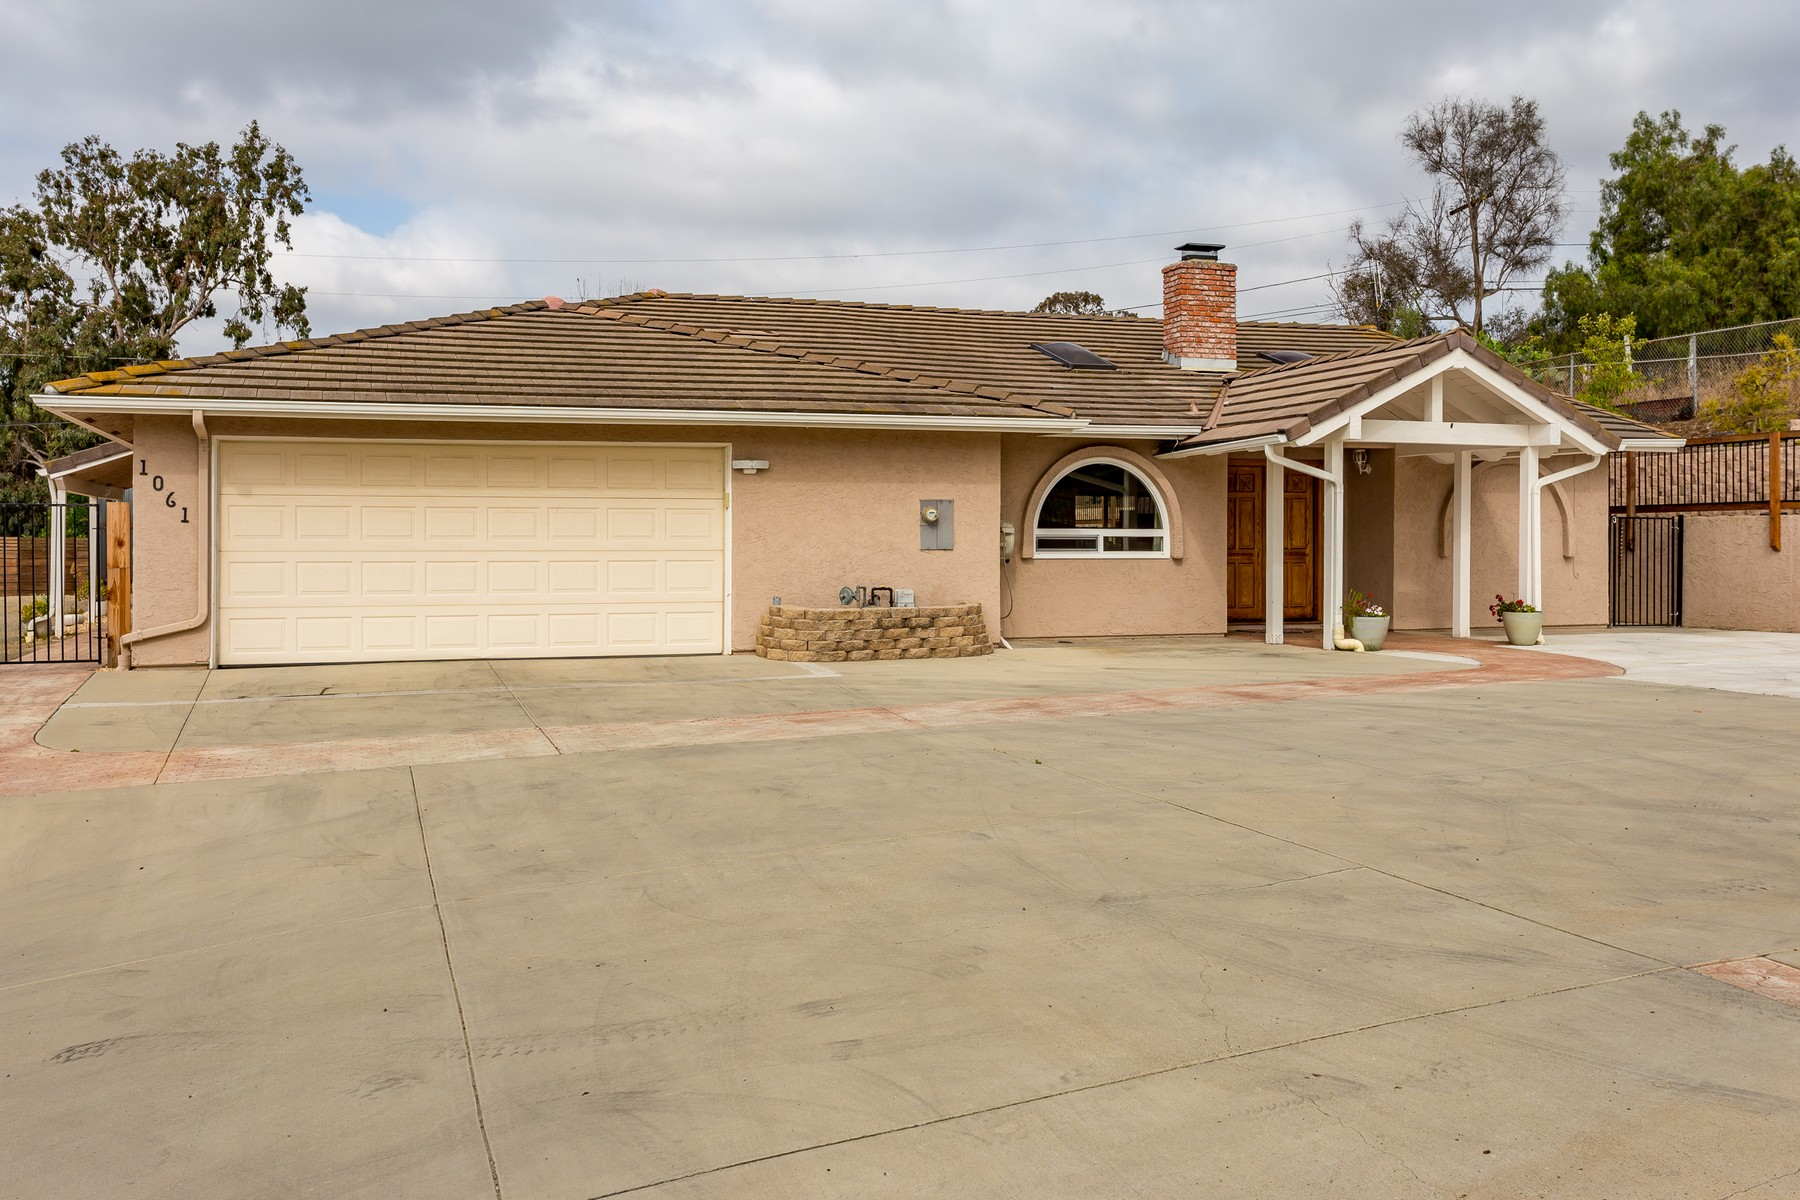 Single Family Home for Sale at 1061 Lime Place, Vista CA 92081 Vista, California, 92081 United States